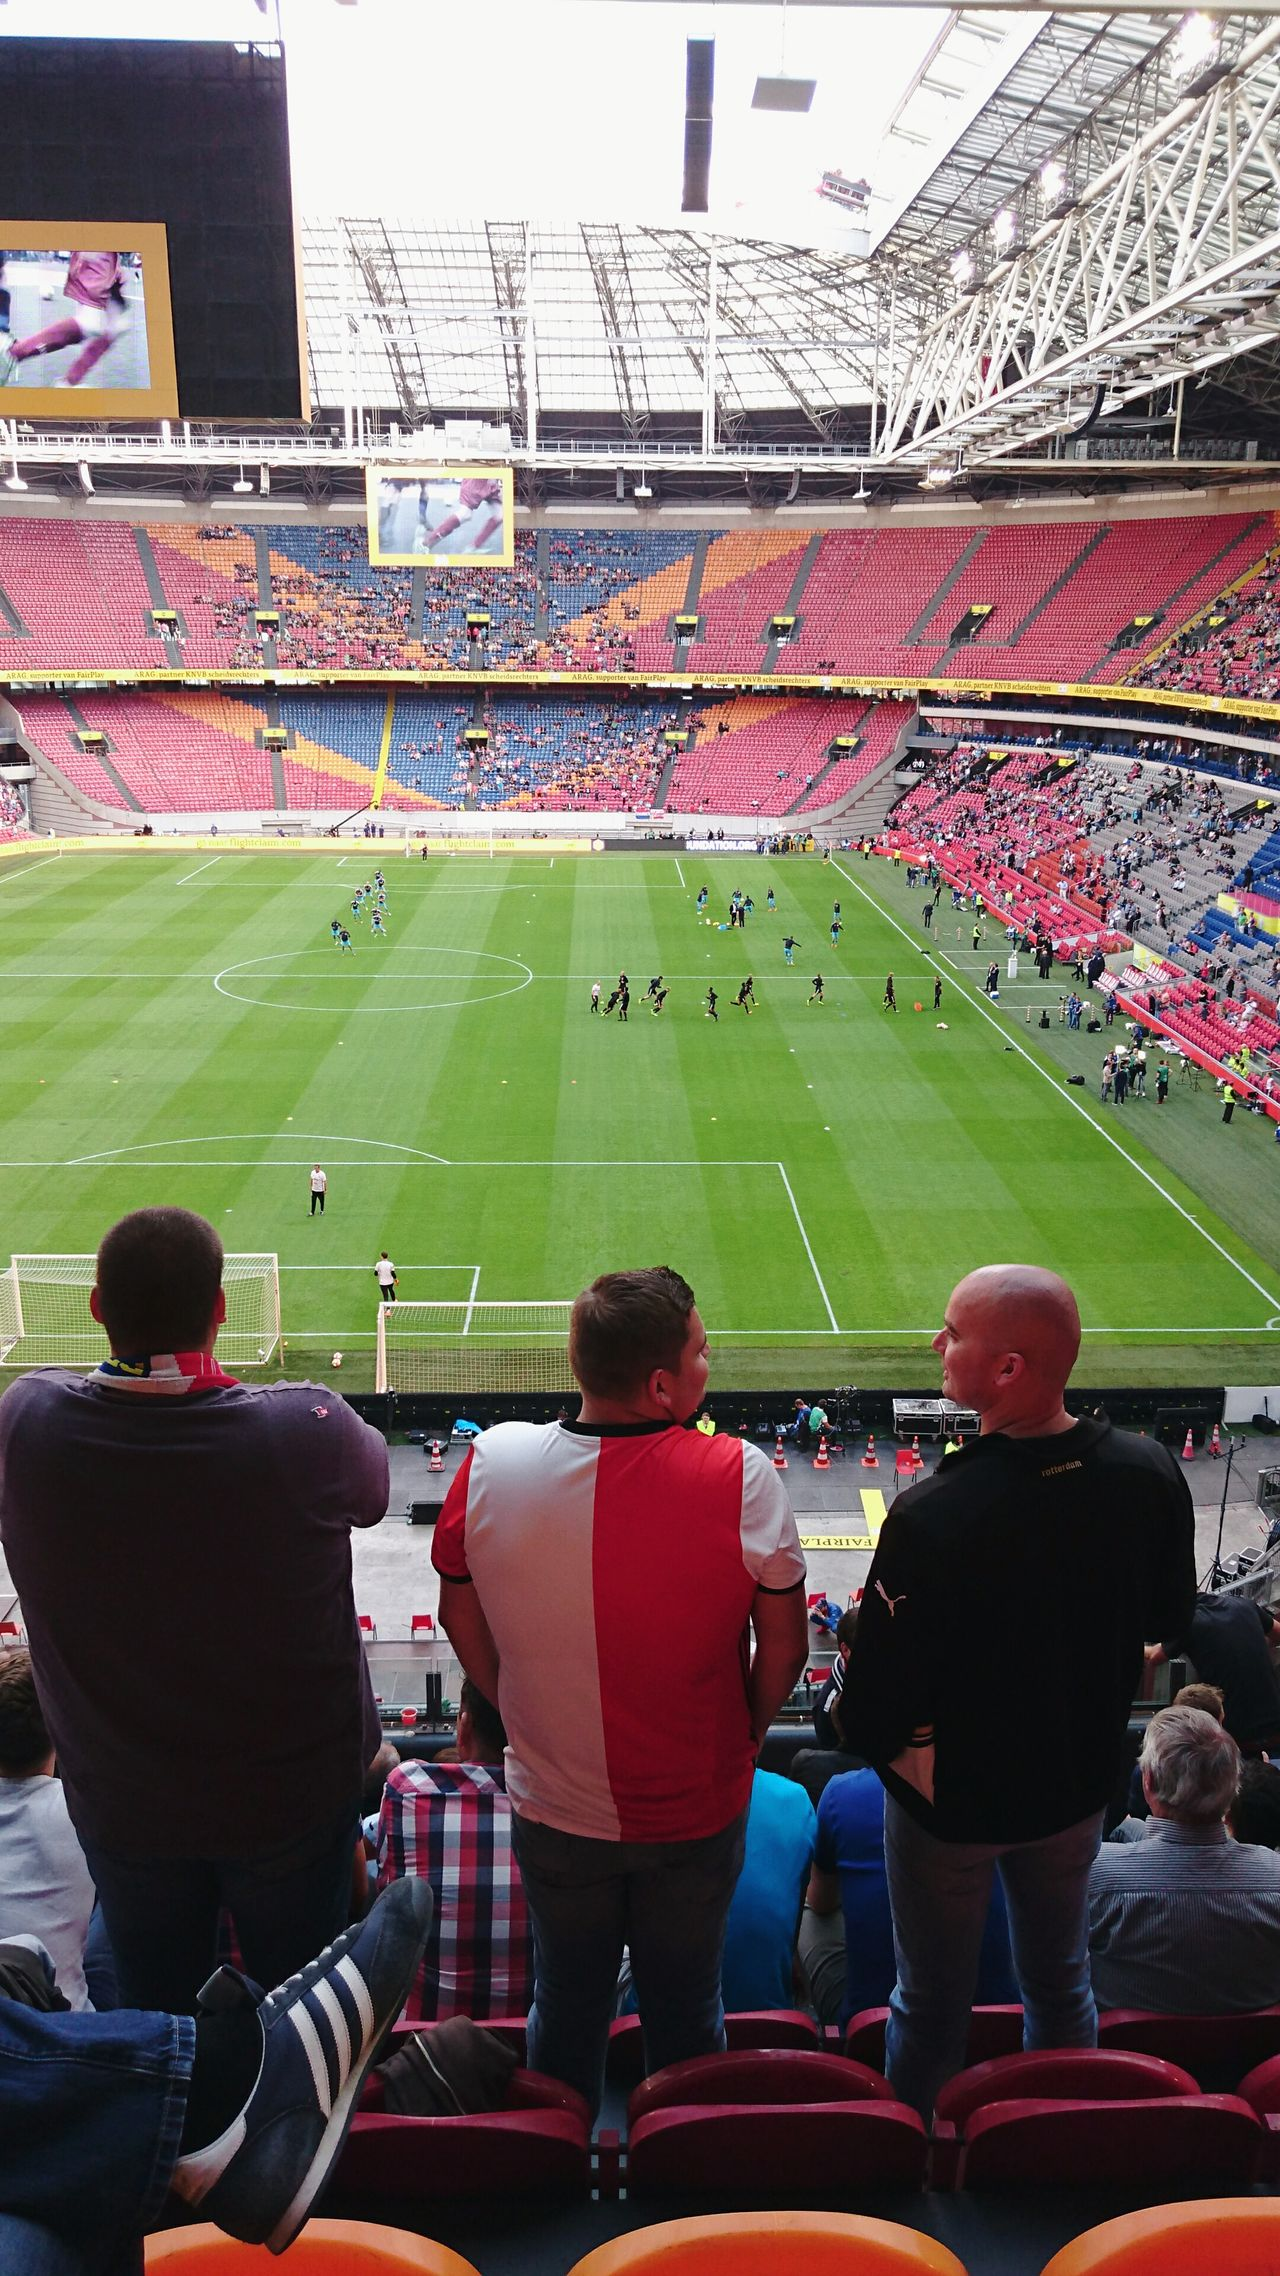 People Together Feyenoord Rotterdam, Winner of the Dutch FA Cup Feyenoord Supporters Waiting Before The Game Charity Shield Johan Cruyff against Psv , Champion Amsterdam Arena Netherlands (c) 2016 Shangita Bose All Rights Reserved People Photography Color Of Life A Bird's Eye View The Color Of Sport Green Snap A Stranger